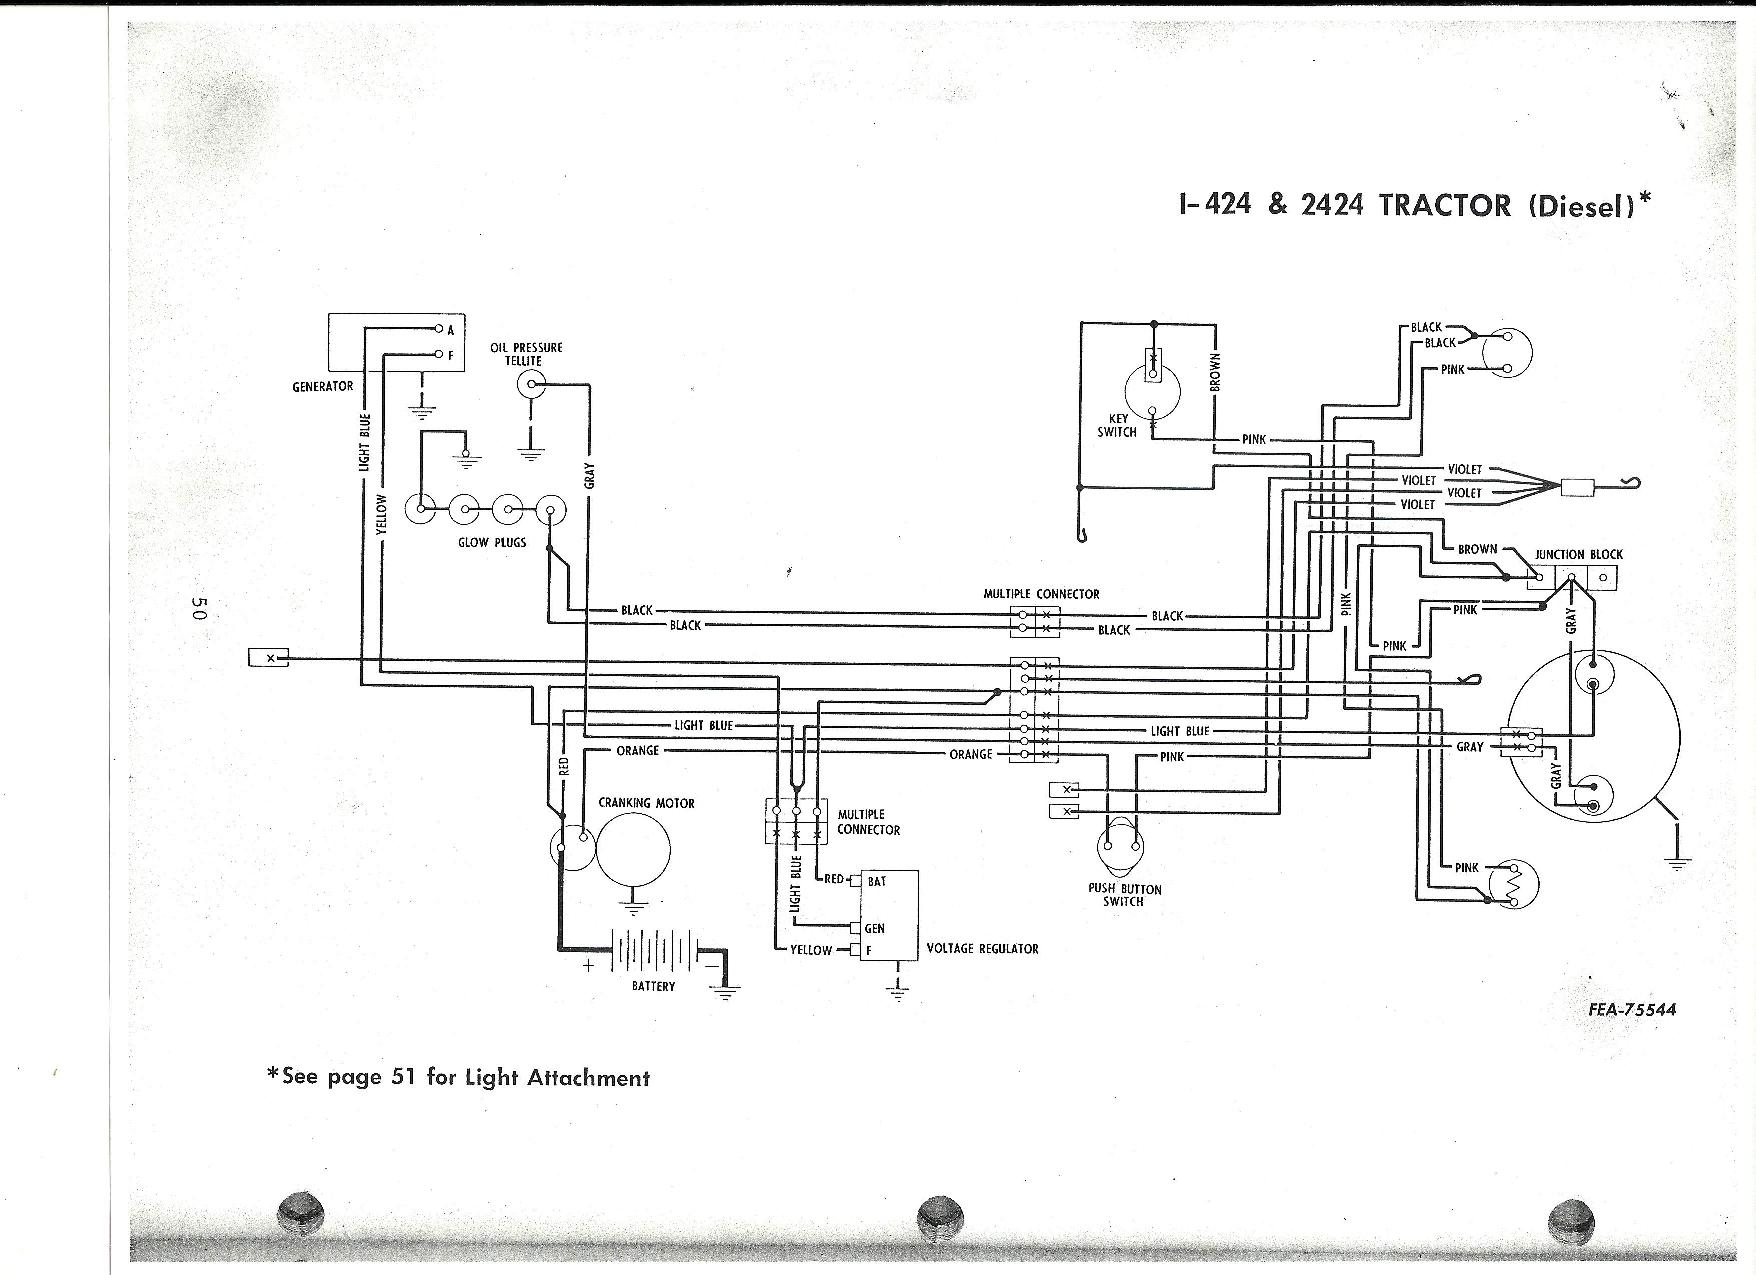 farmall 460 light wiring diagram farmall international tractor wiring diagram wiring diagrams dat  farmall international tractor wiring